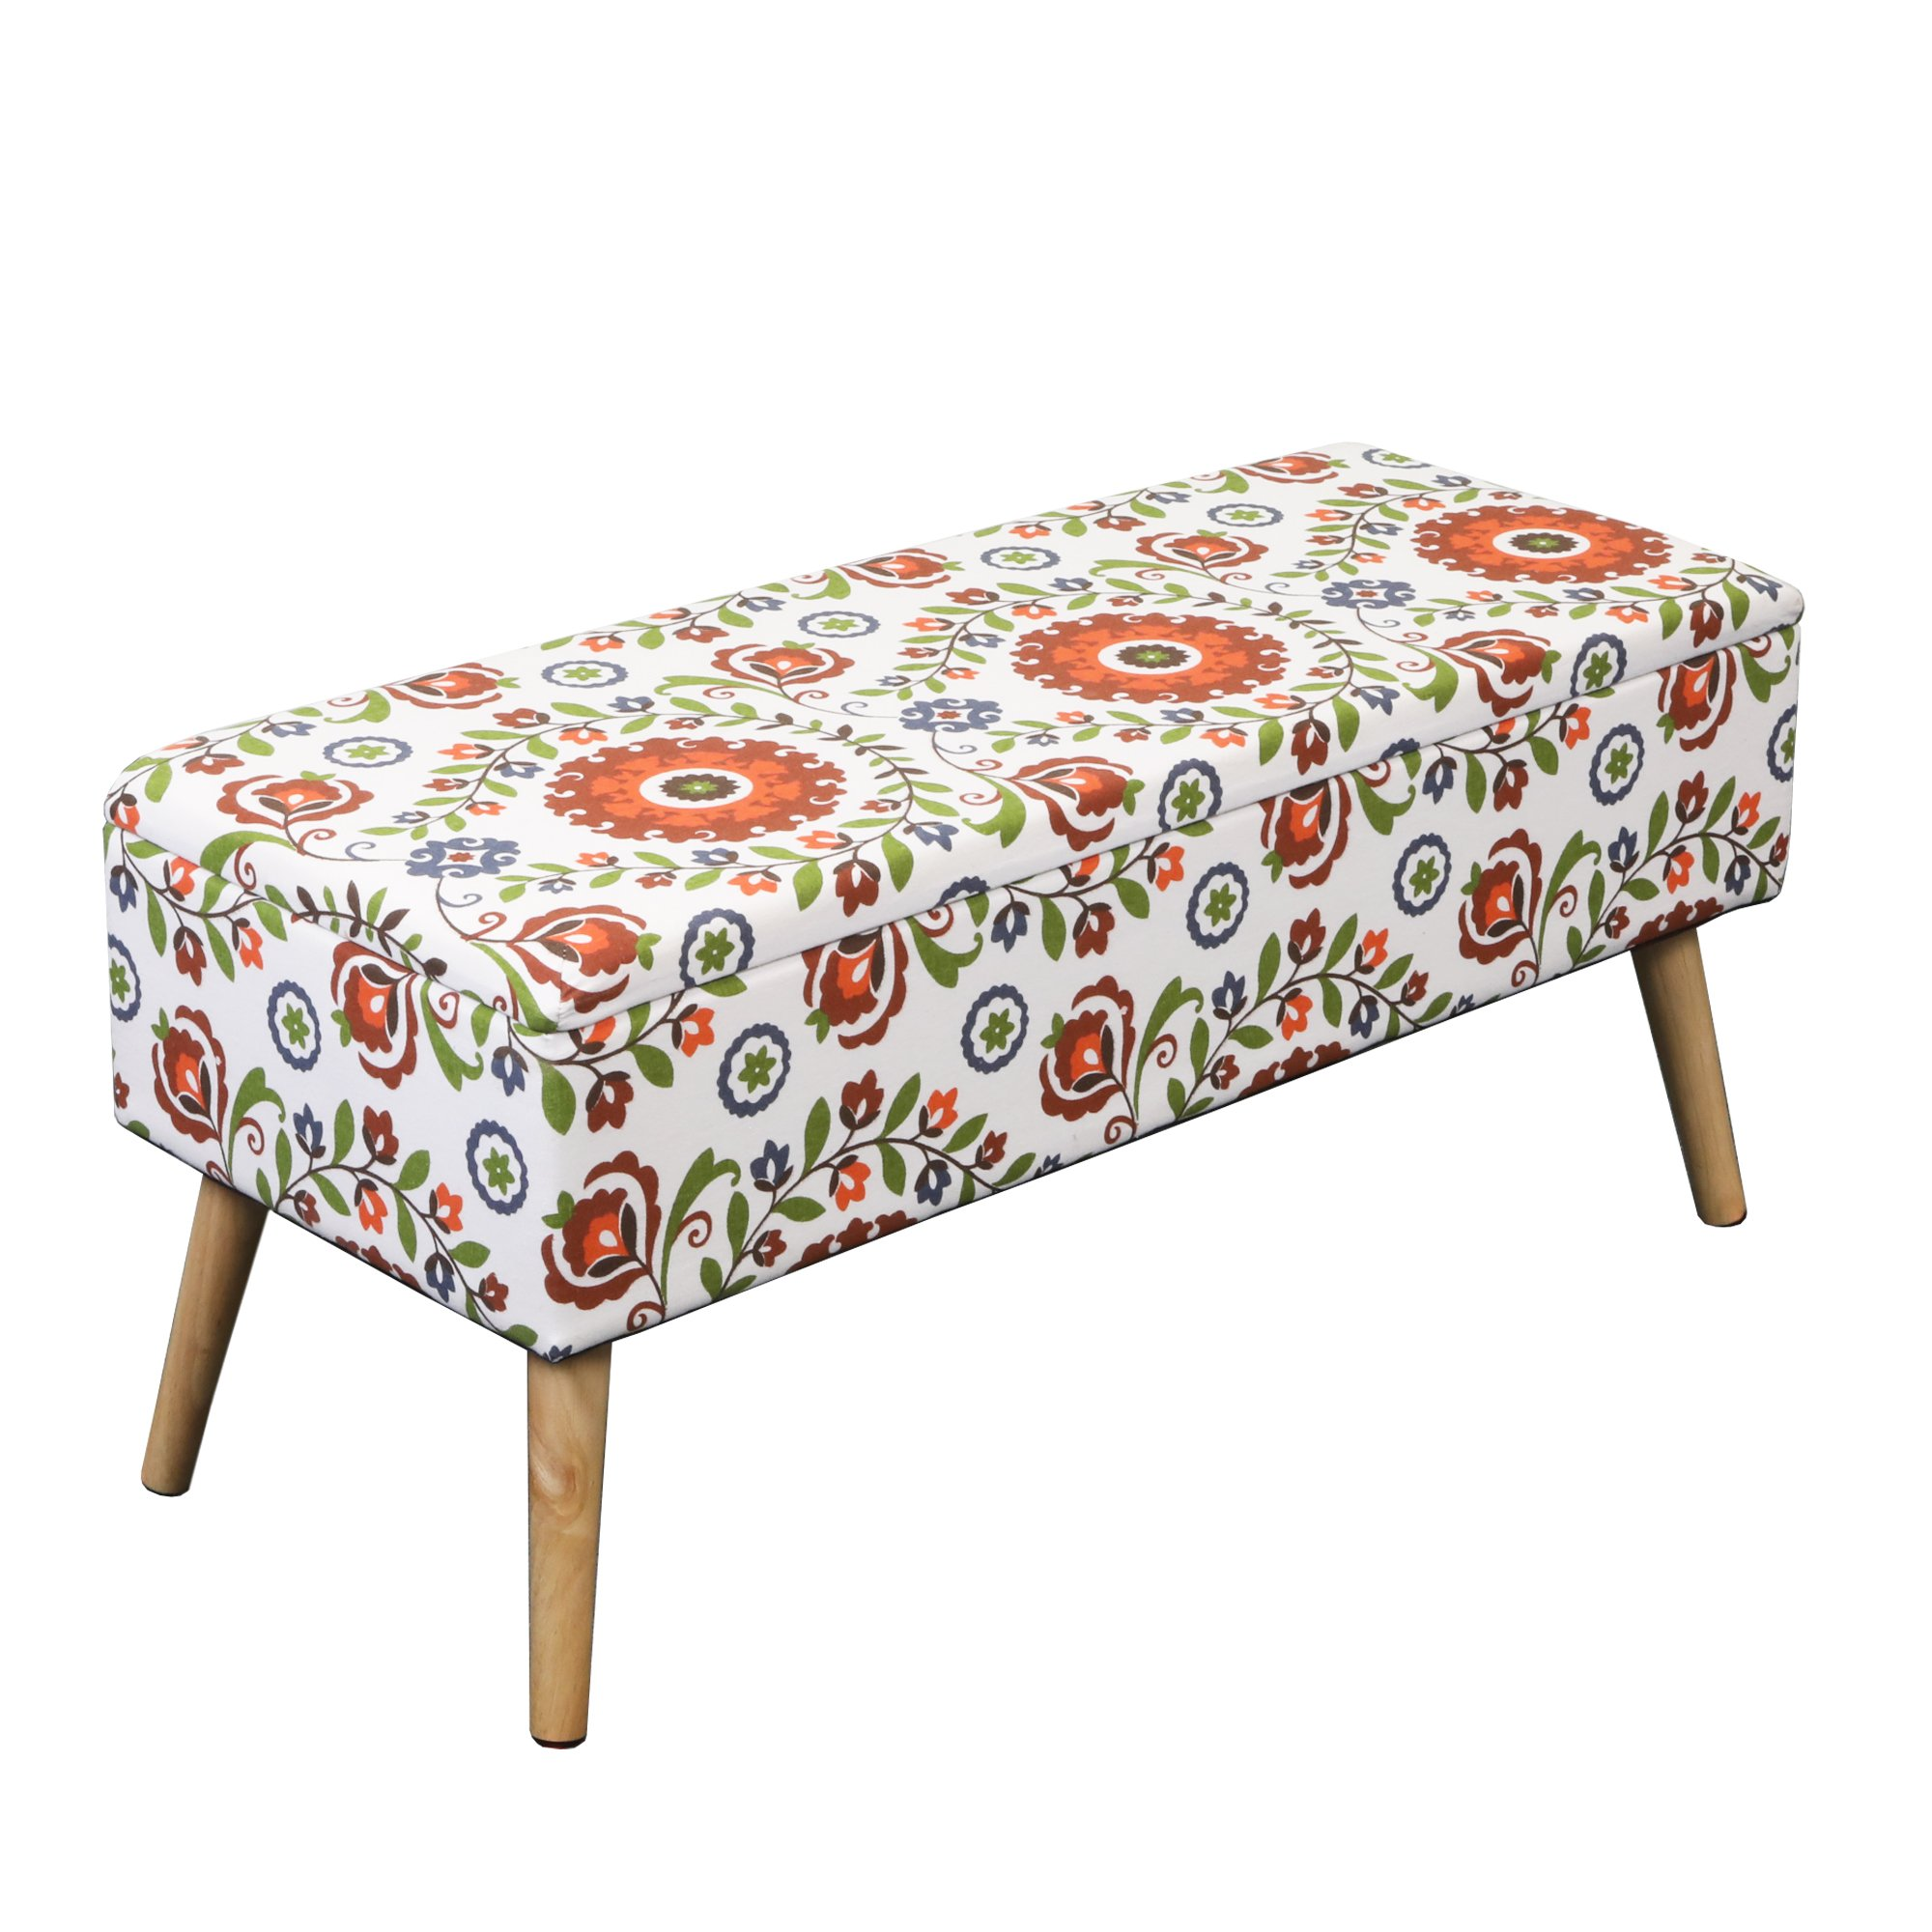 Terrific Details About Otto Ben 37 In Easy Lift Top Upholstered Ottoman Storage Bench Retro Floral Gmtry Best Dining Table And Chair Ideas Images Gmtryco